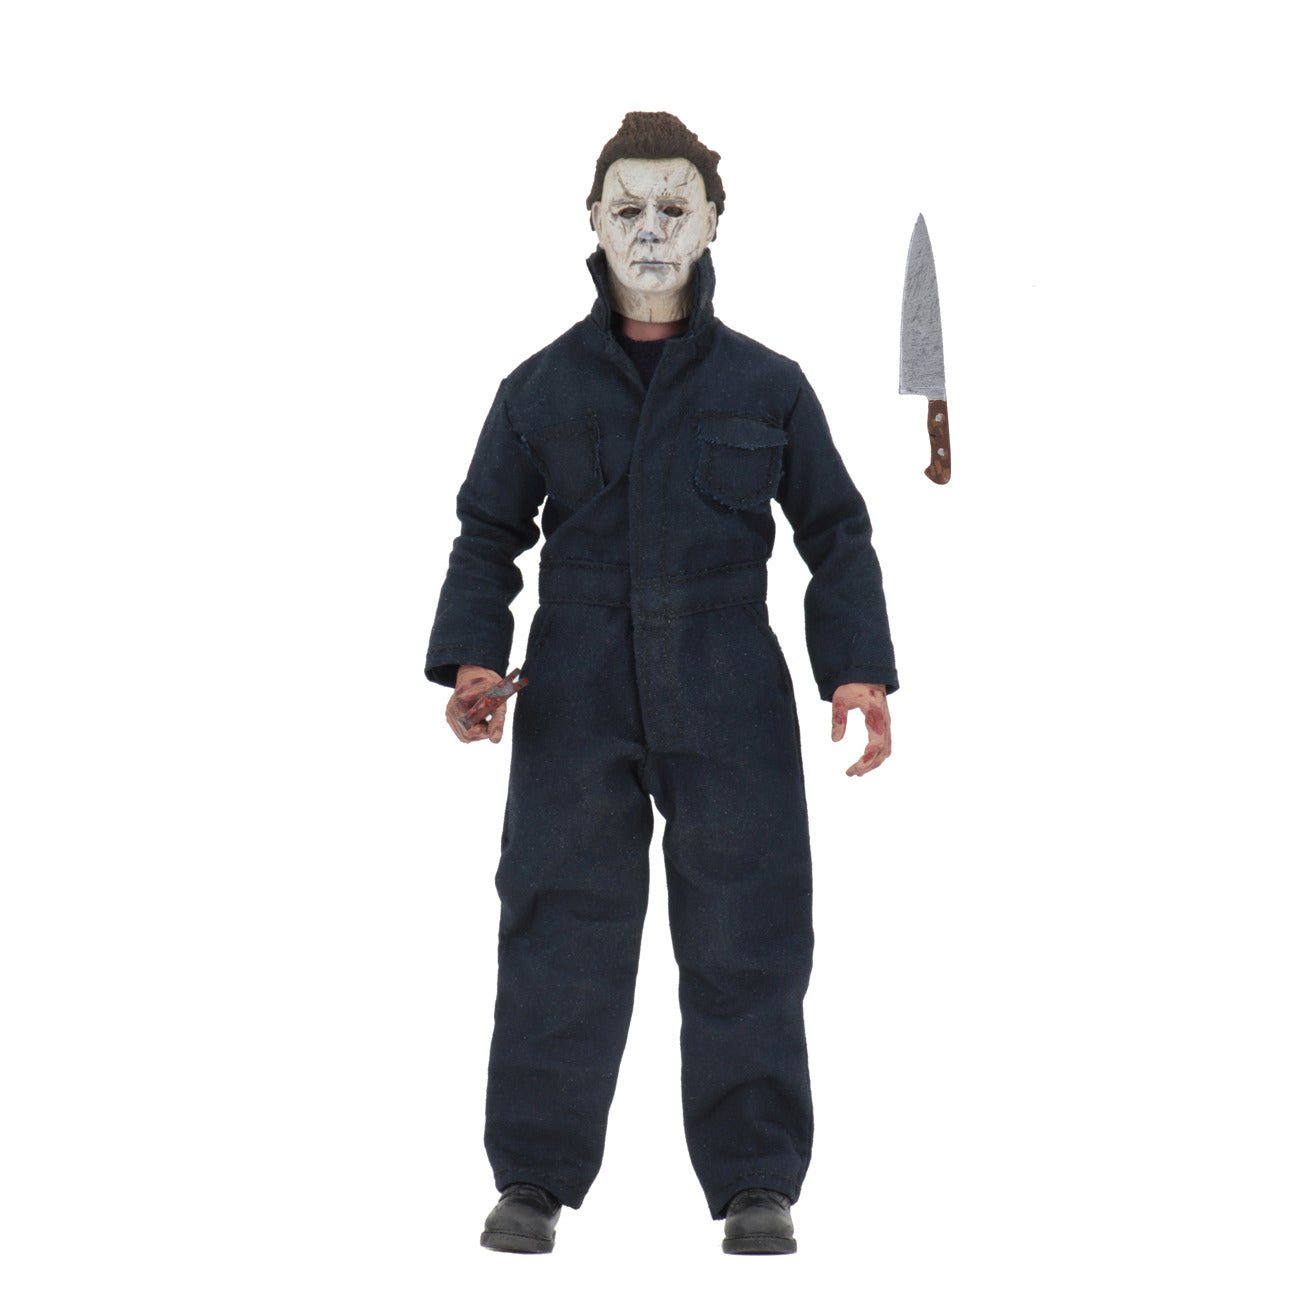 Halloween 2018 Michael Myers Clothed 8 inch Action Figure